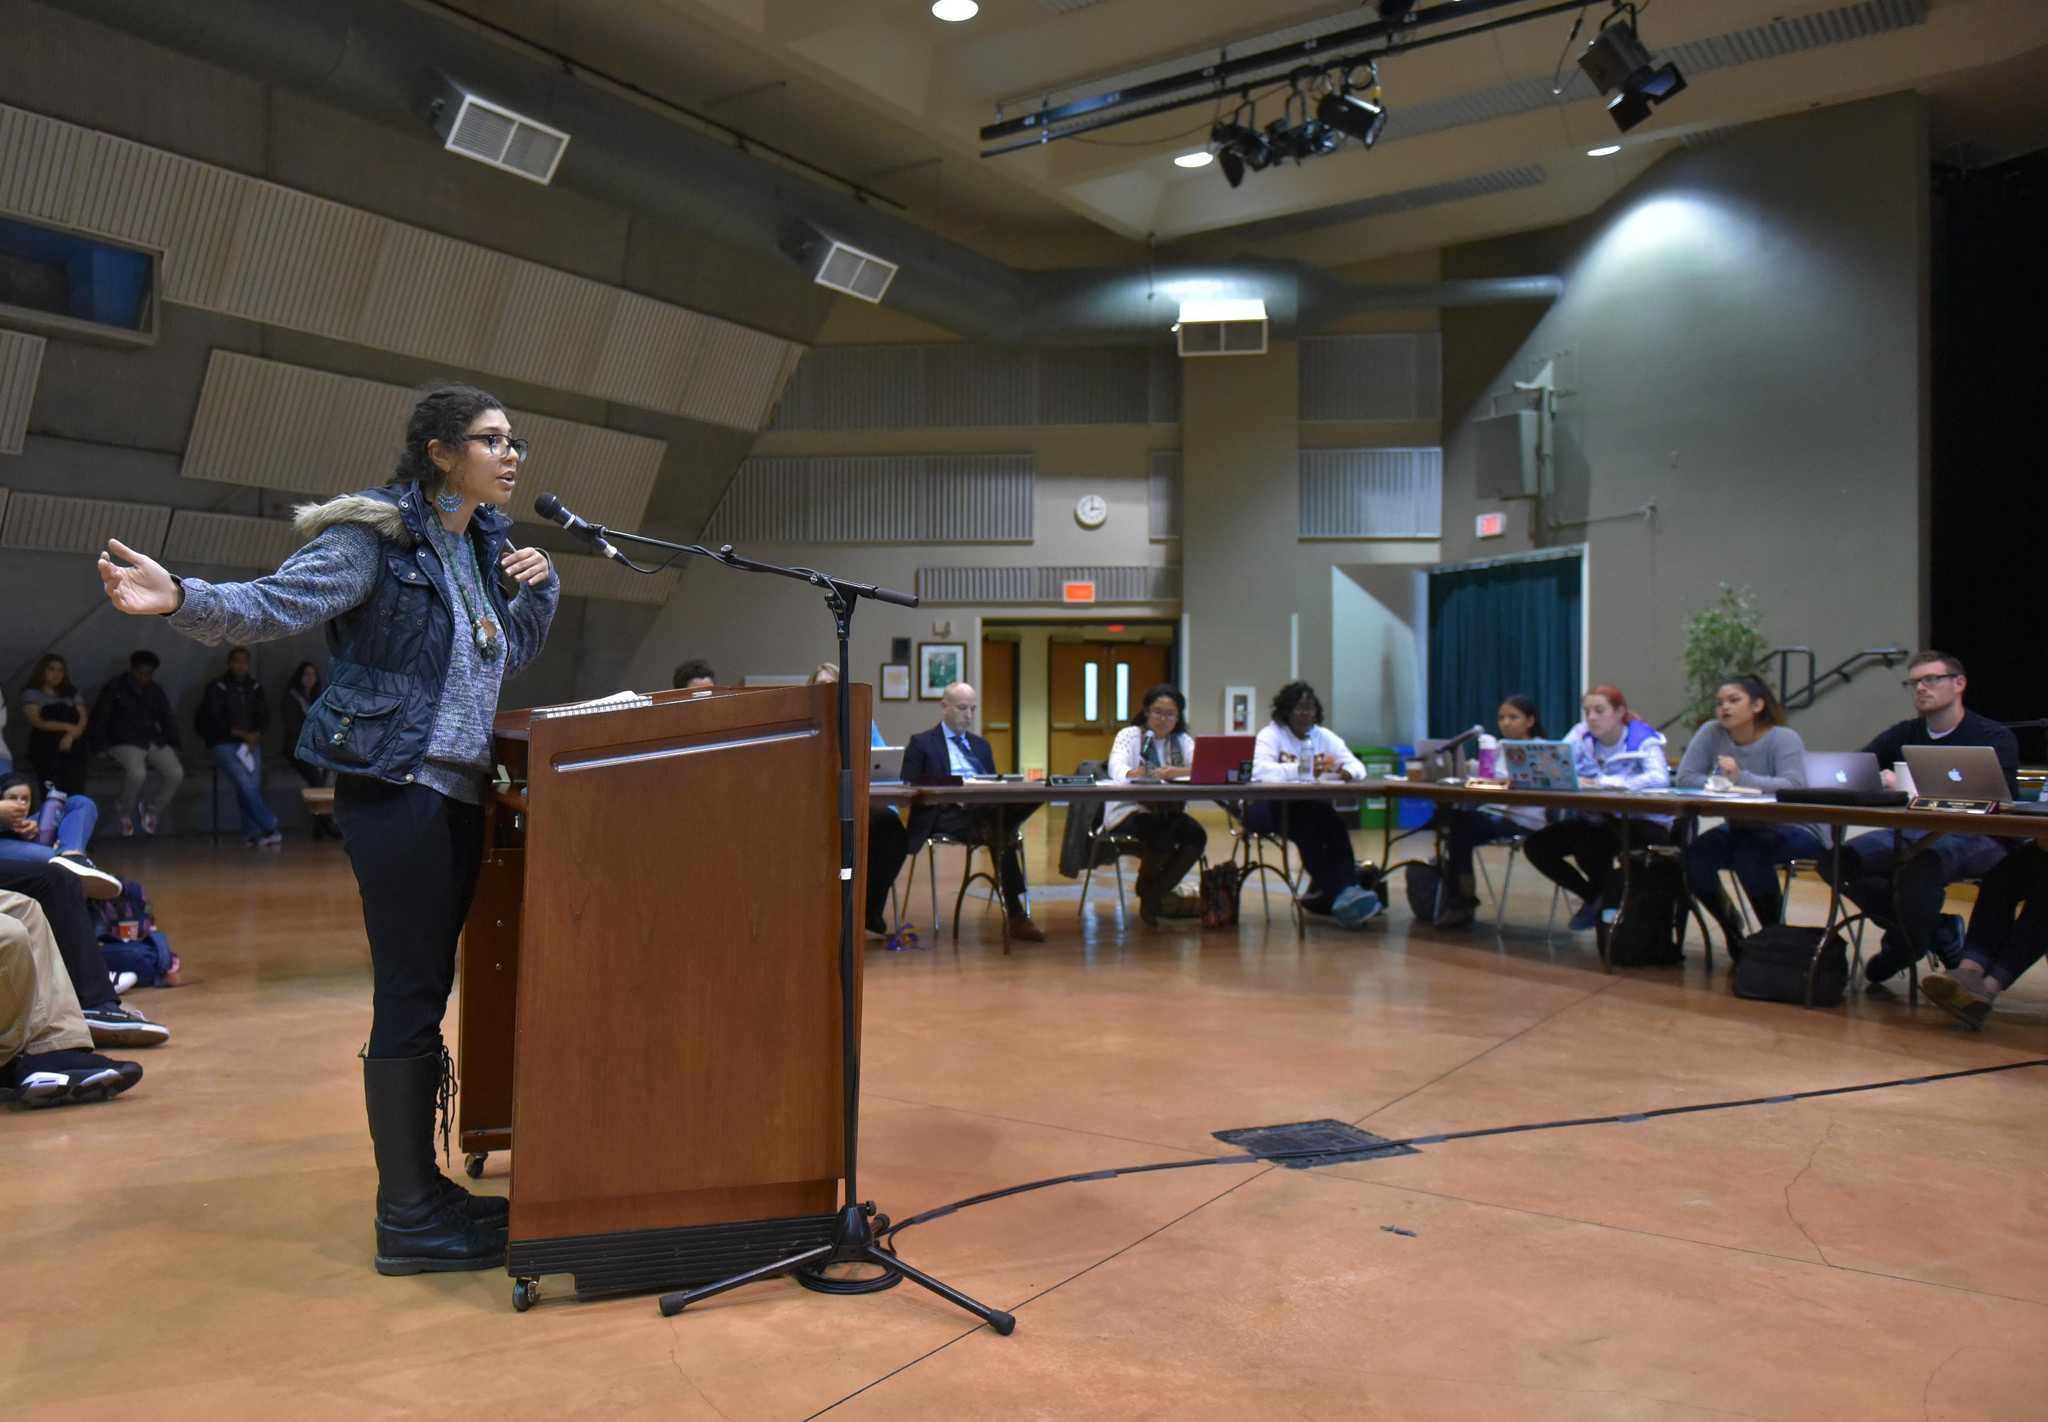 SF State student, Metzali Andrade, speaks against funding cuts during a public comment section on Associated Students, Inc. board meeting at Jack Adams Hall at SF State Wednesday, Sept. 30. (Qing Huang / Xpress)